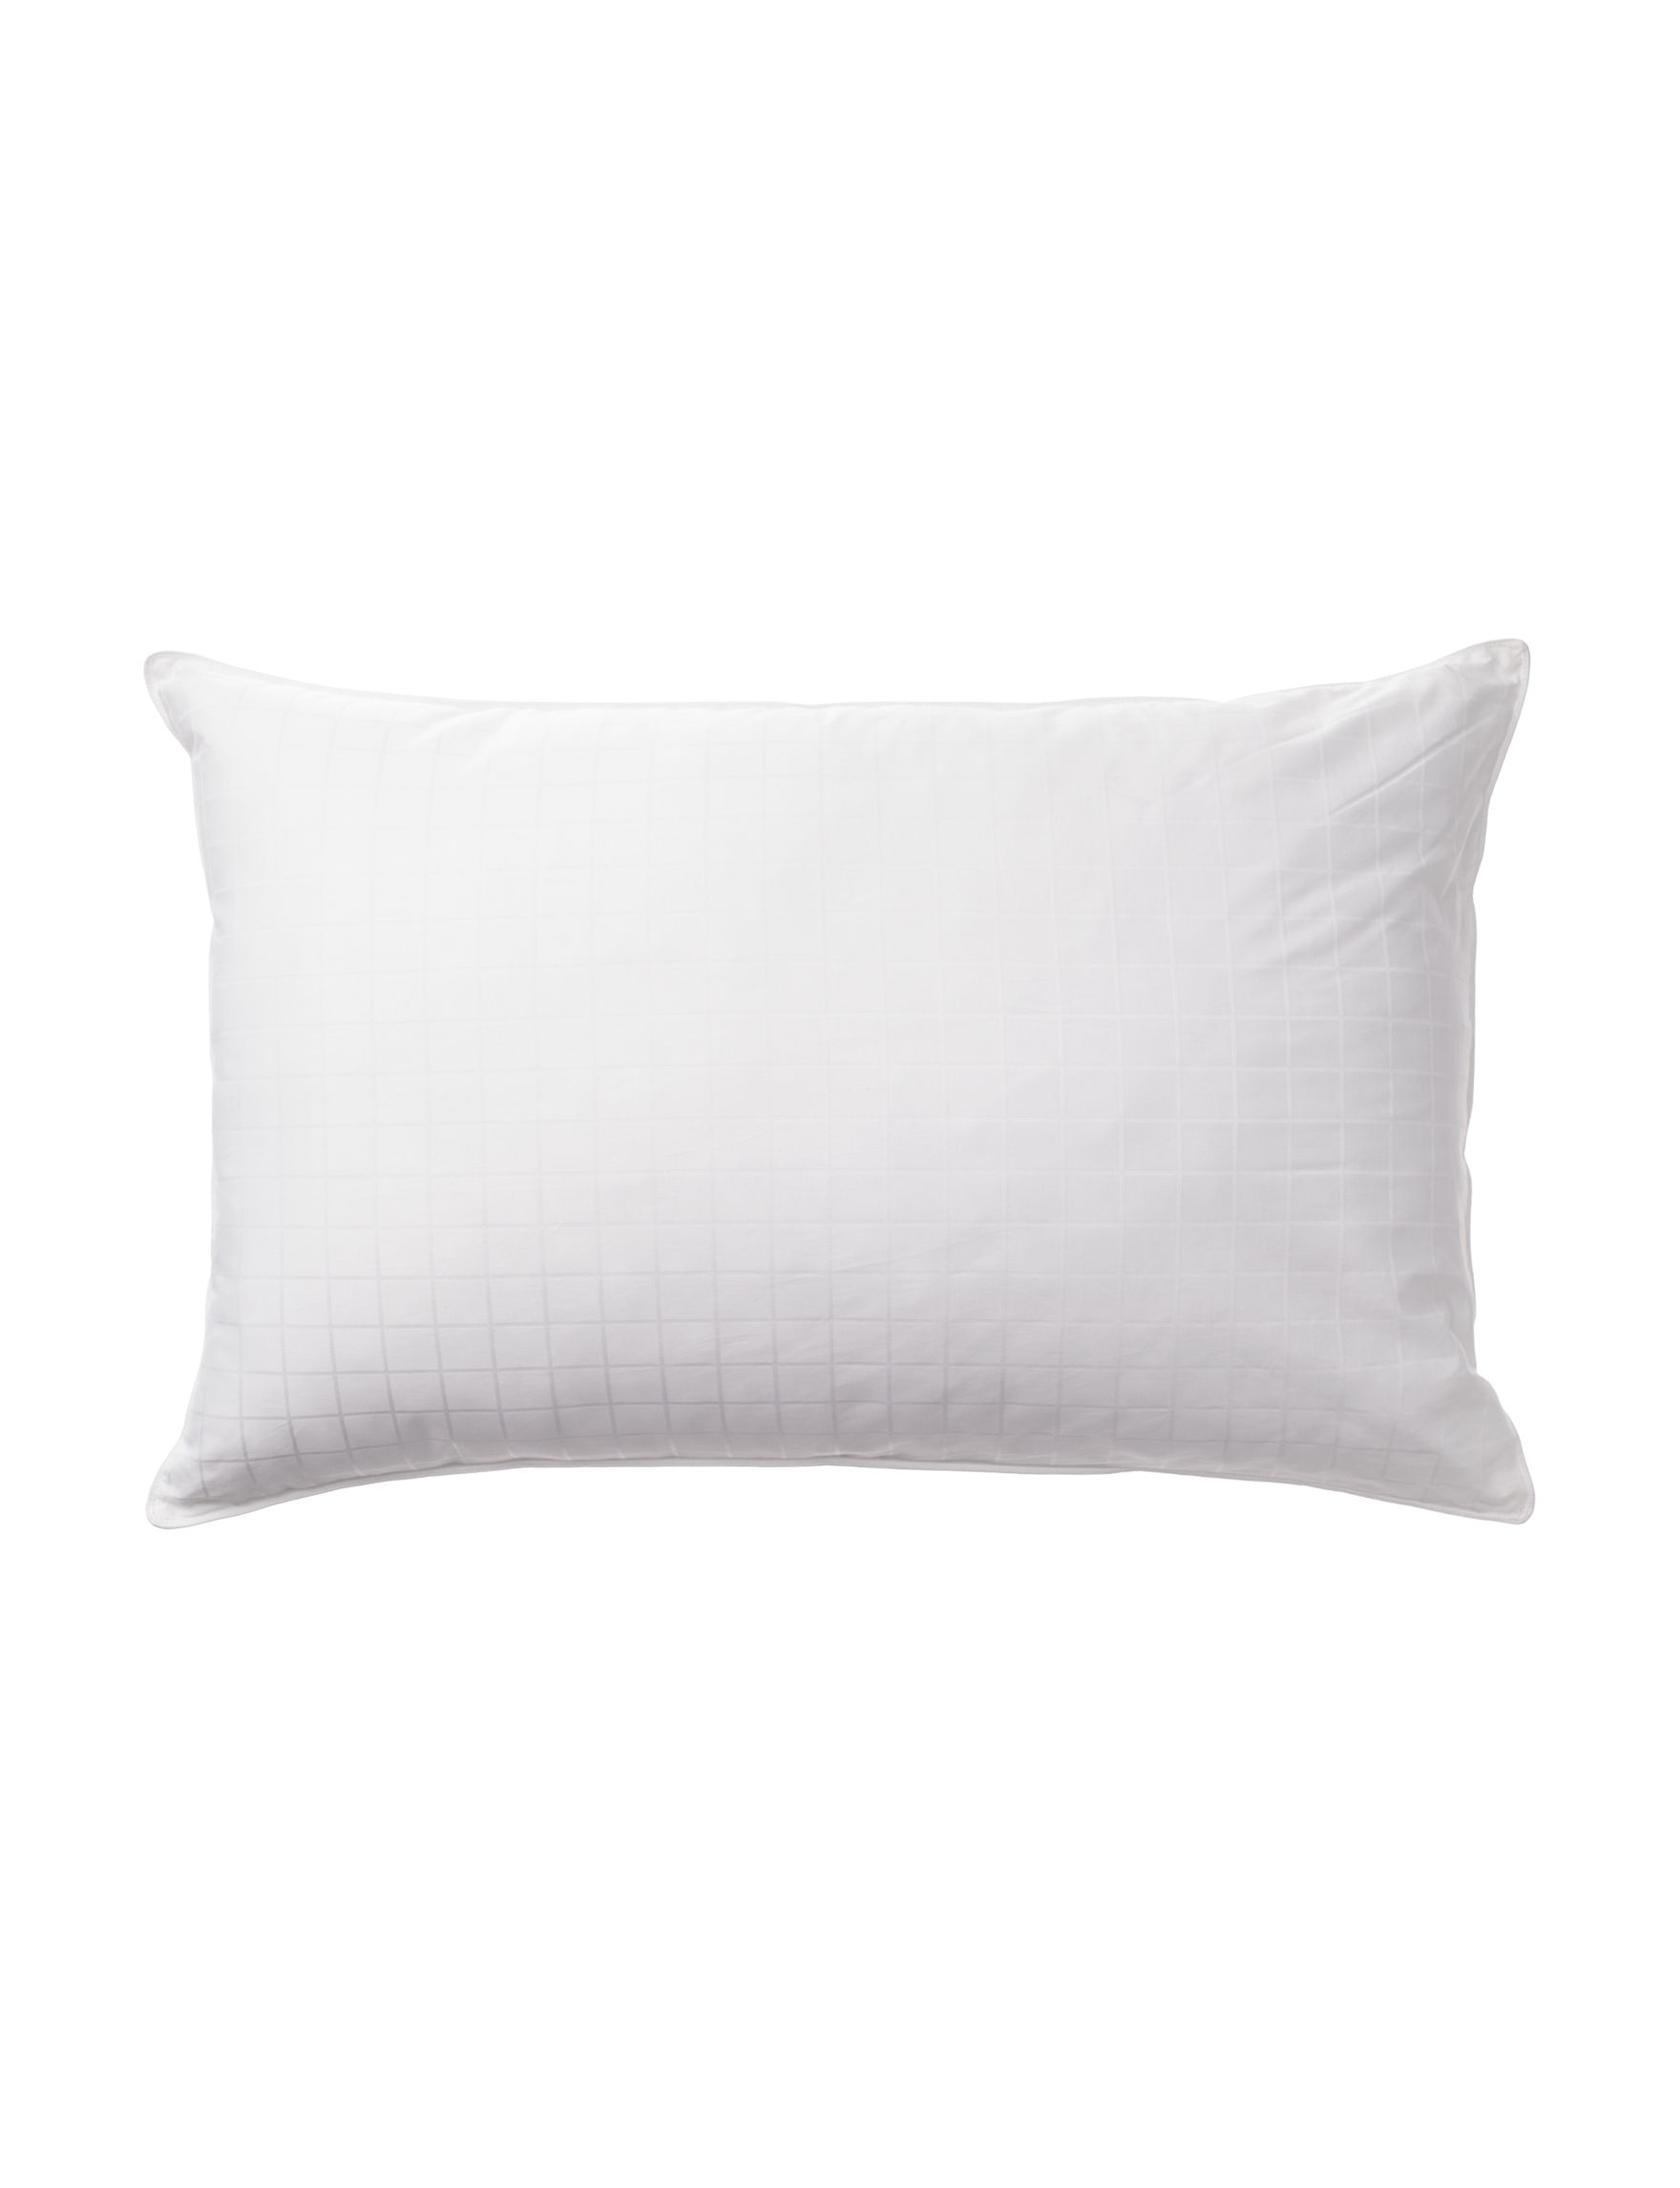 Candice Olson White Bed Pillows